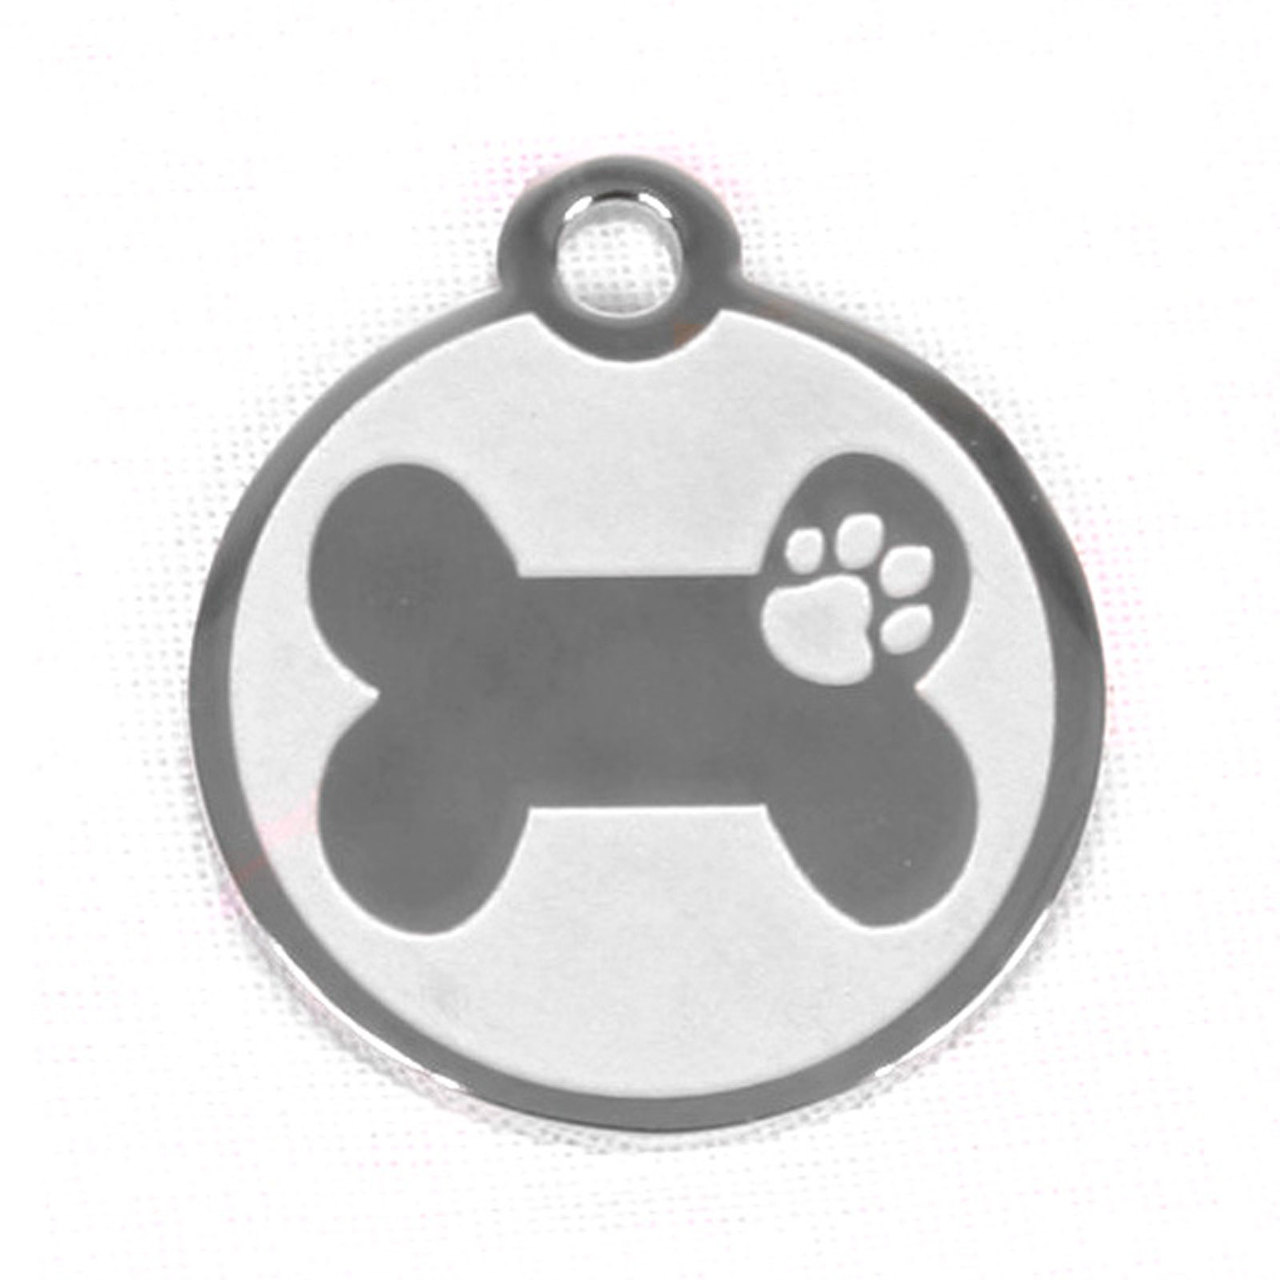 Hot Dog Stainless Steel Bone And Paw Pet/ Dog ID Tag